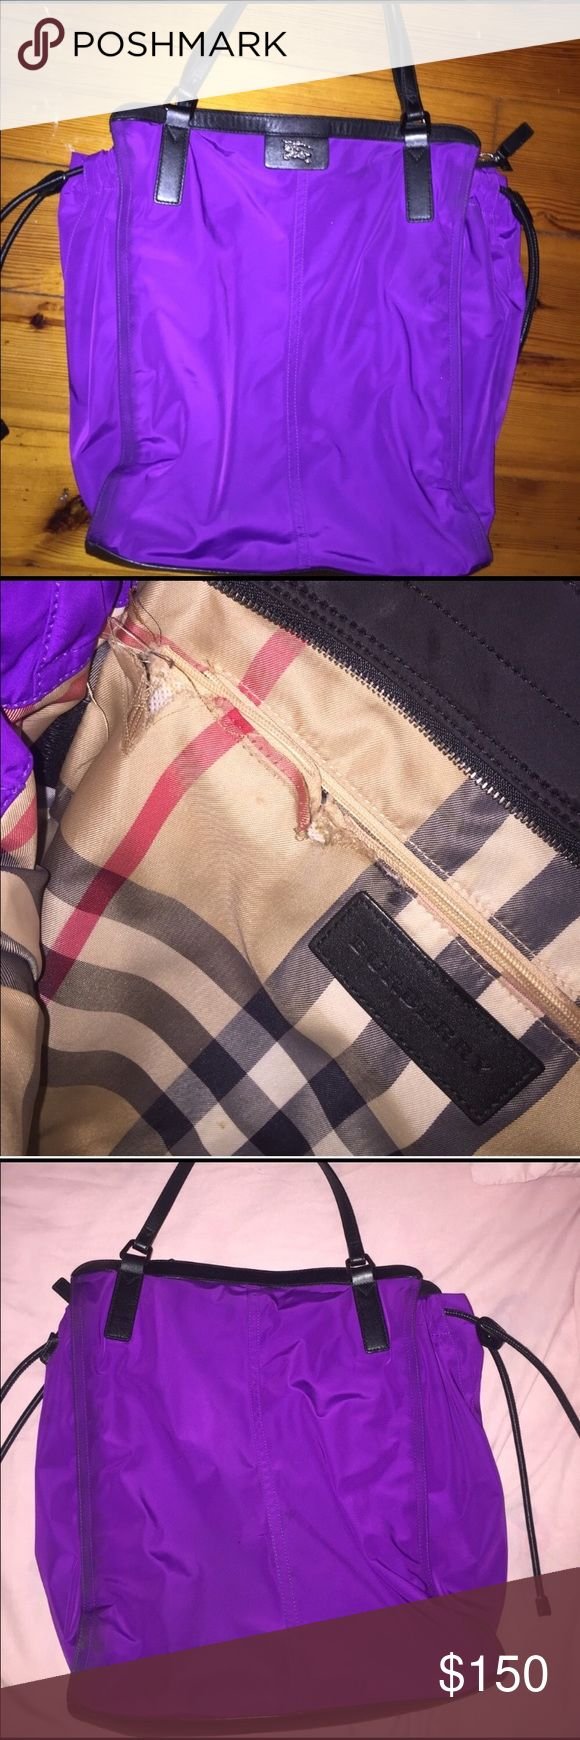 Burberry Brit purple tote bag-Authentic Burberry Beautiful purple Burberry tote bag. The only thing wrong is the zipper got hung up in the lining once and cause a small tear in the lining. Not visible from the outside. Outside is in perfect condition. Super spacious! 10/10 on the condition on the exterior. Burberry Bags Totes